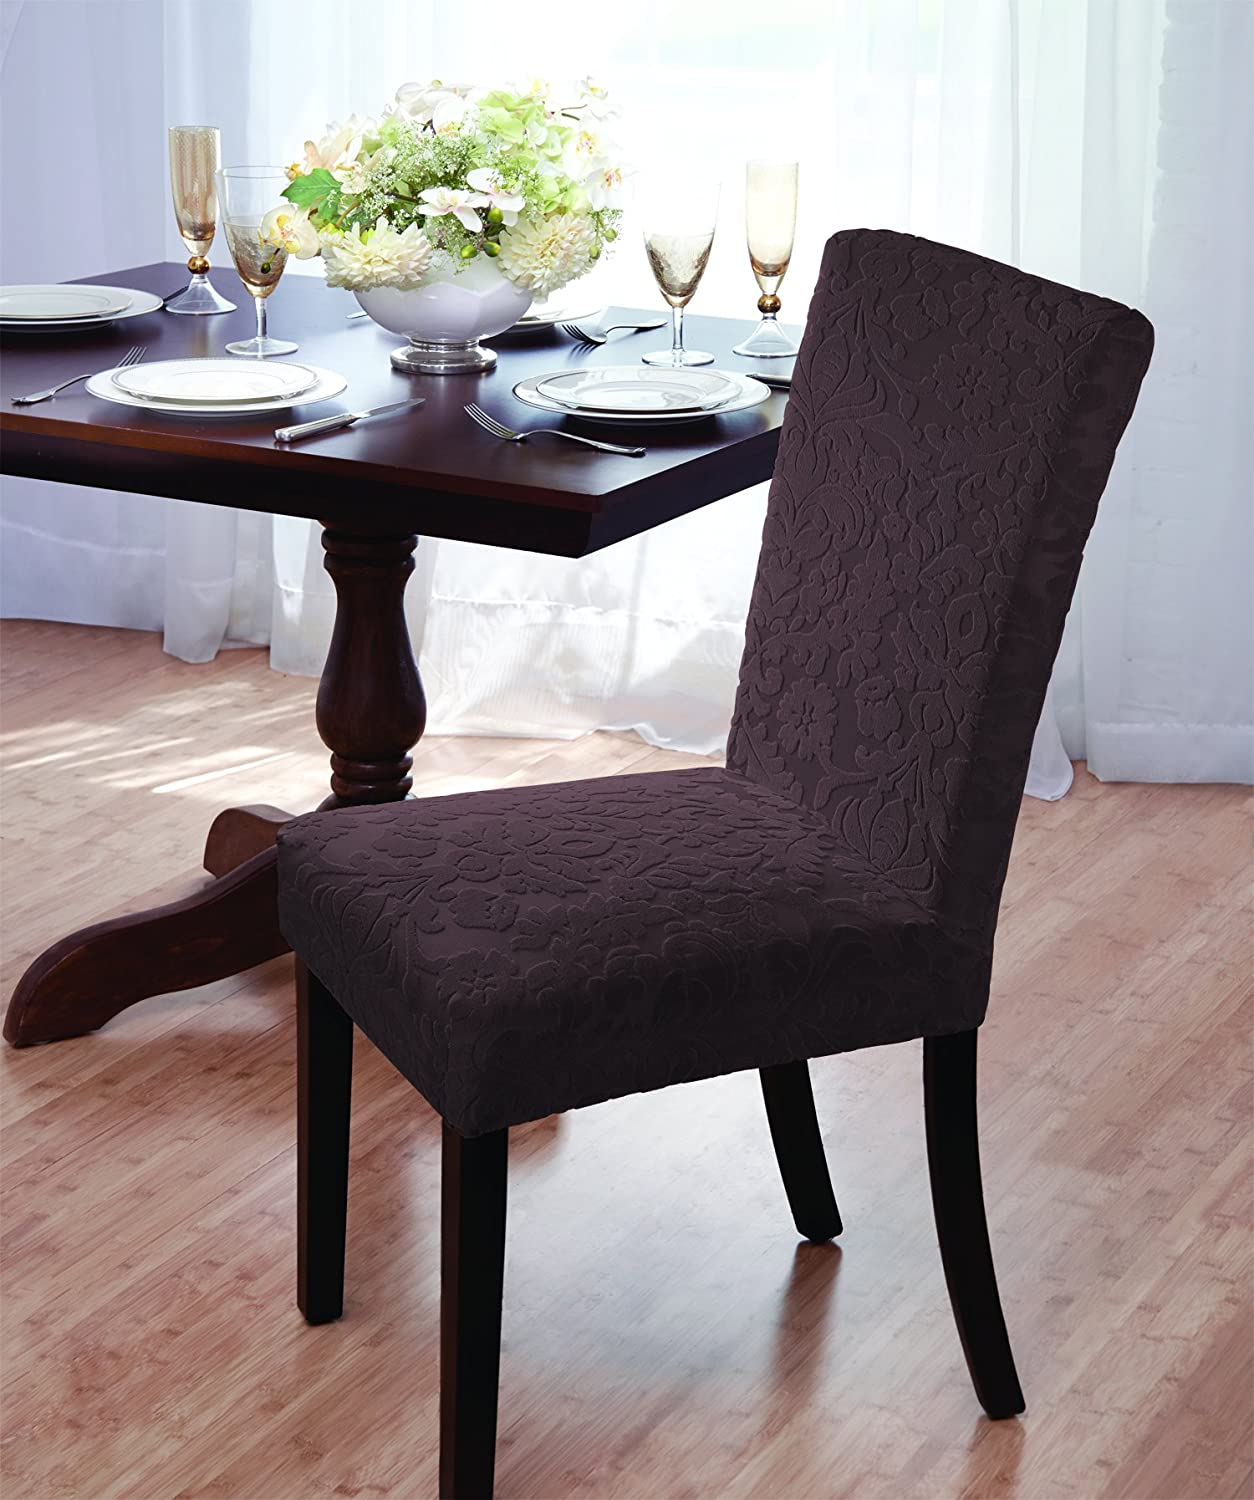 amazoncom luxurious velvet damask dining chair cover beige burgundy brown green beige cell phones u0026 accessories